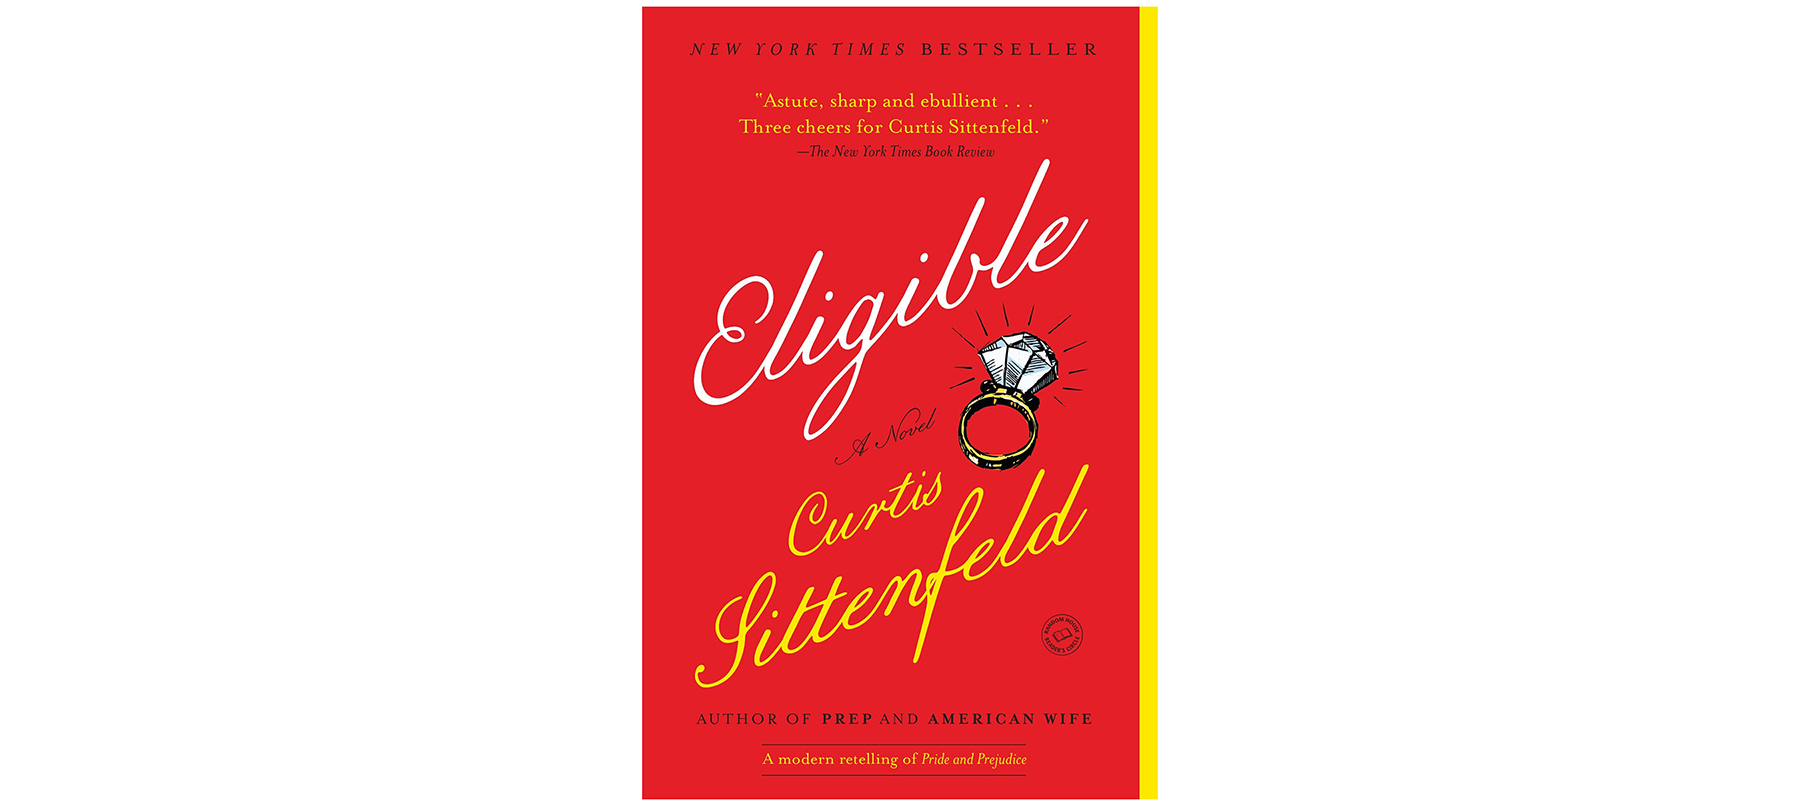 Cover of Eligible, by Curtis Sittenfeld